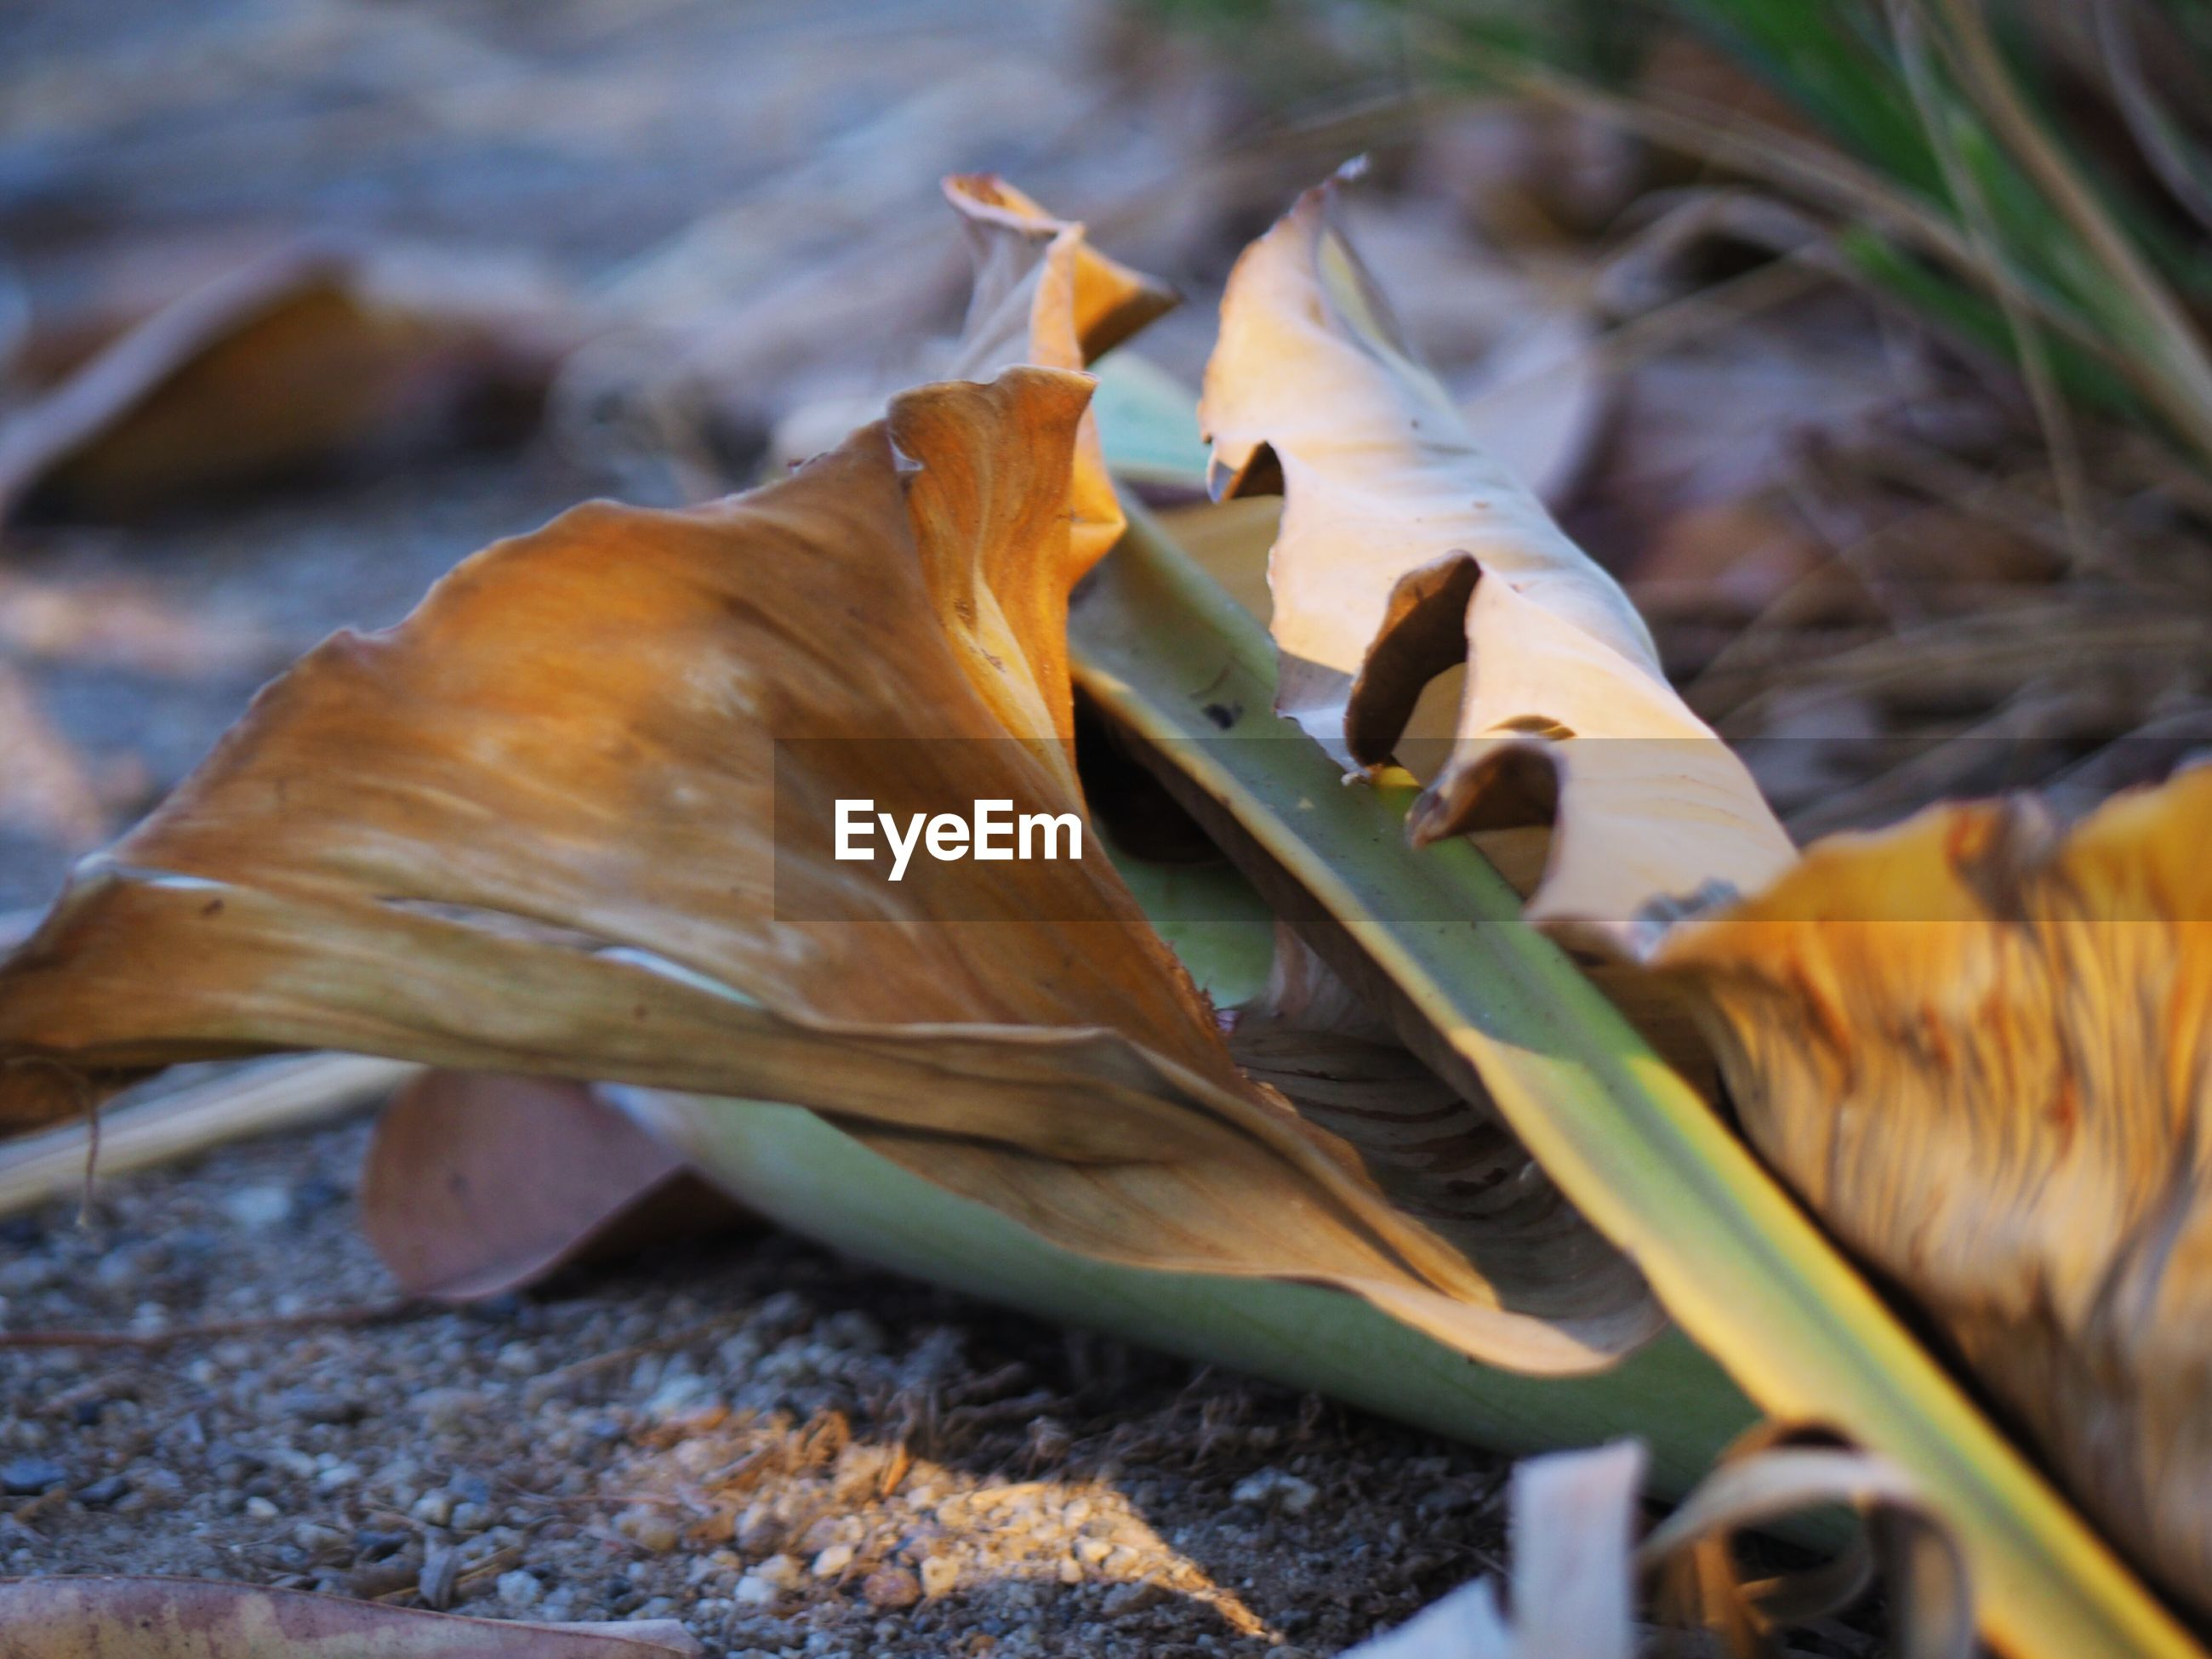 CLOSE-UP OF DRIED LEAVES ON FALLEN LAND